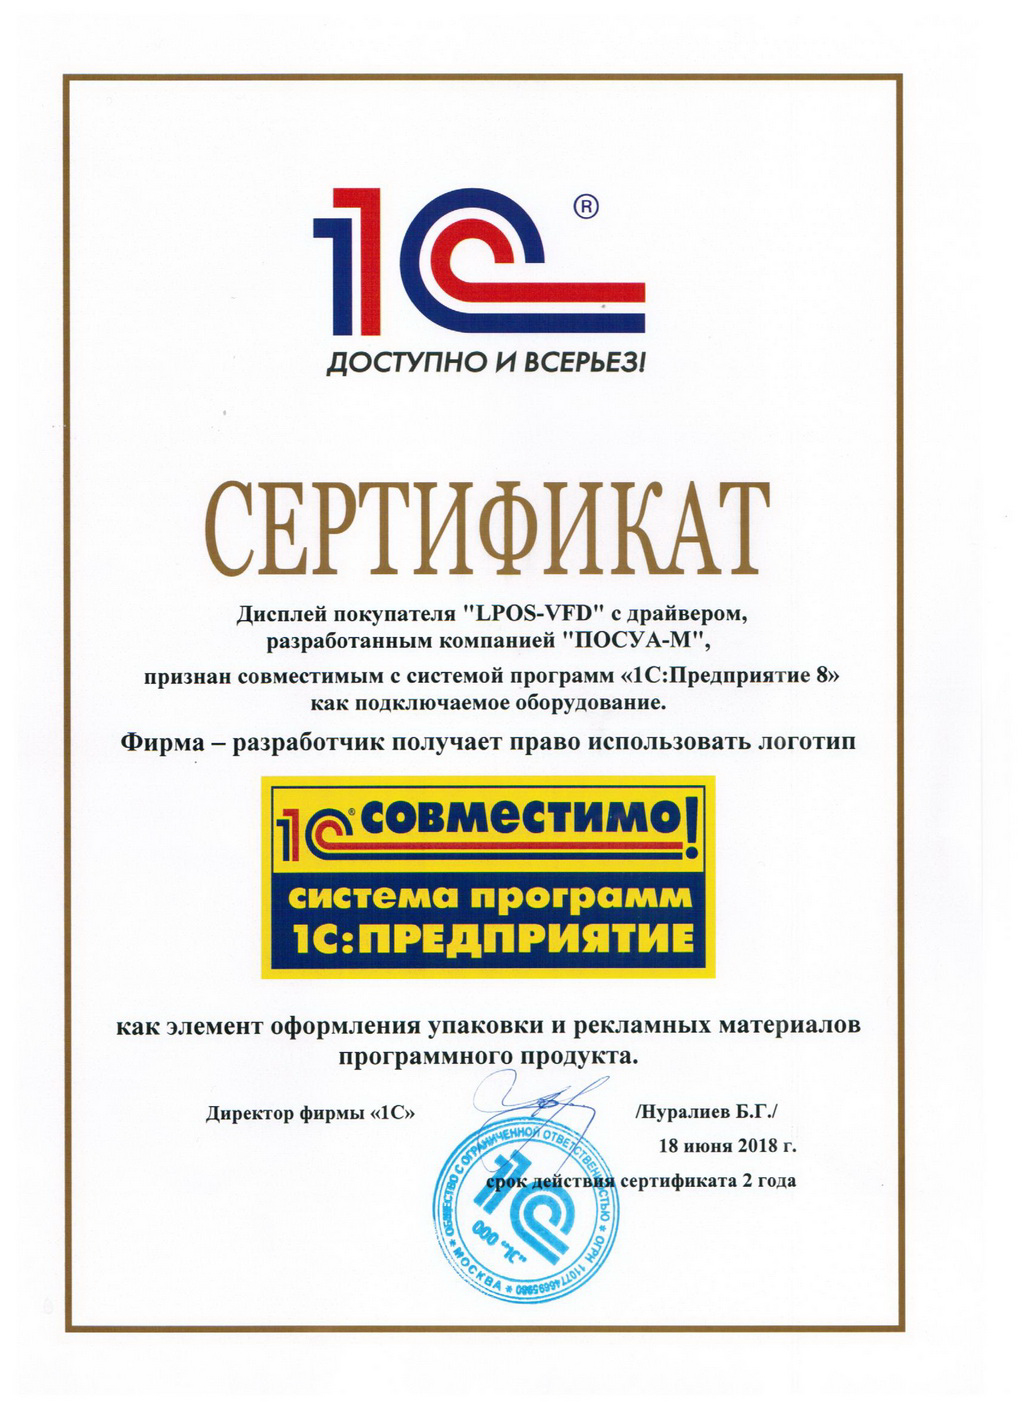 1c buyer display certificate